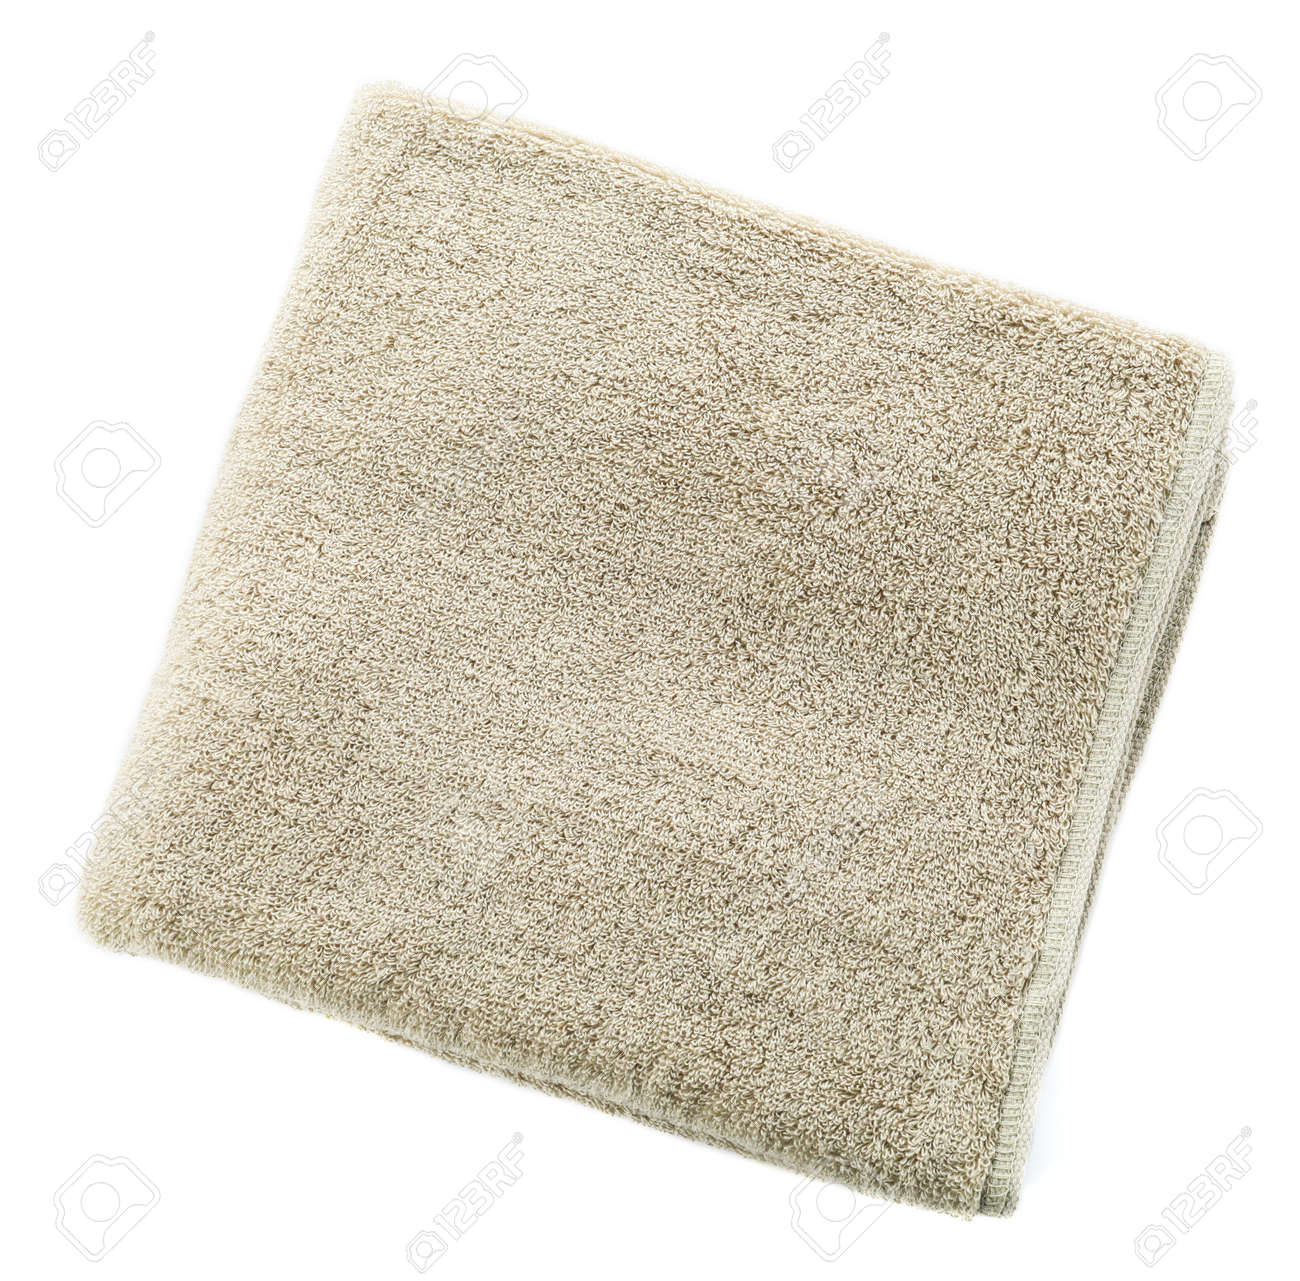 Soft clean towel on white background - 165732608